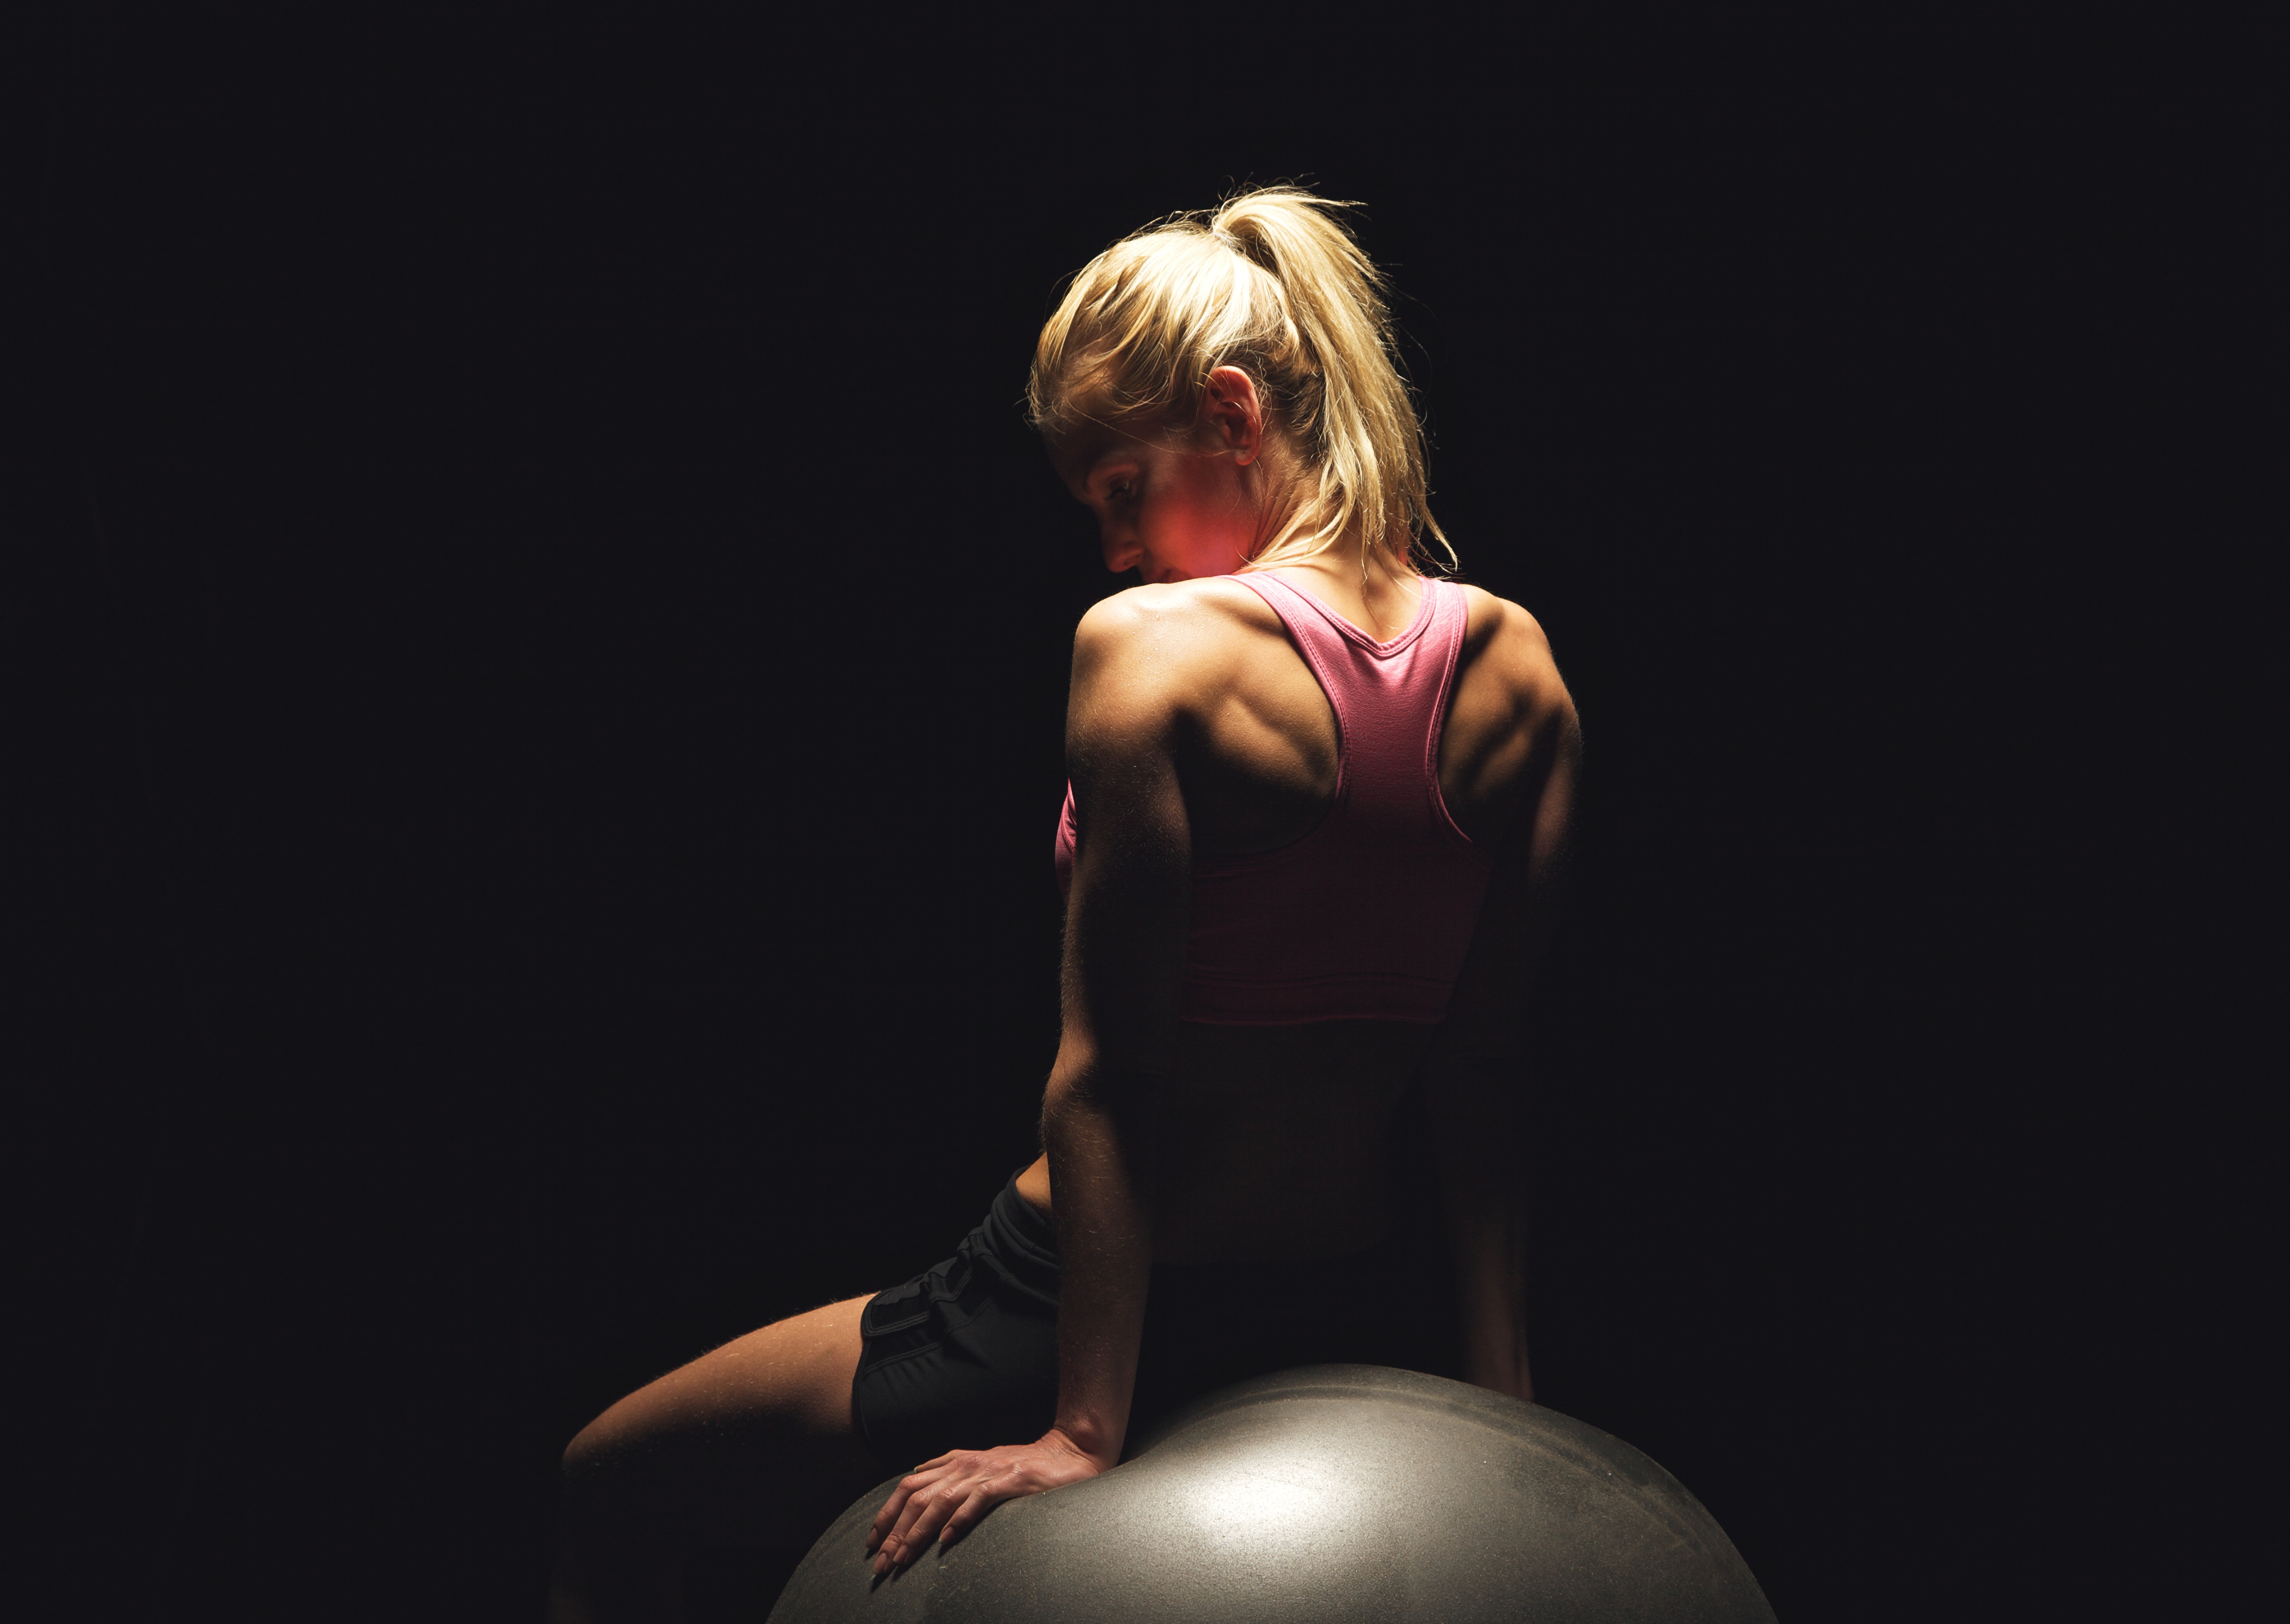 woman sitting on a pilates ball